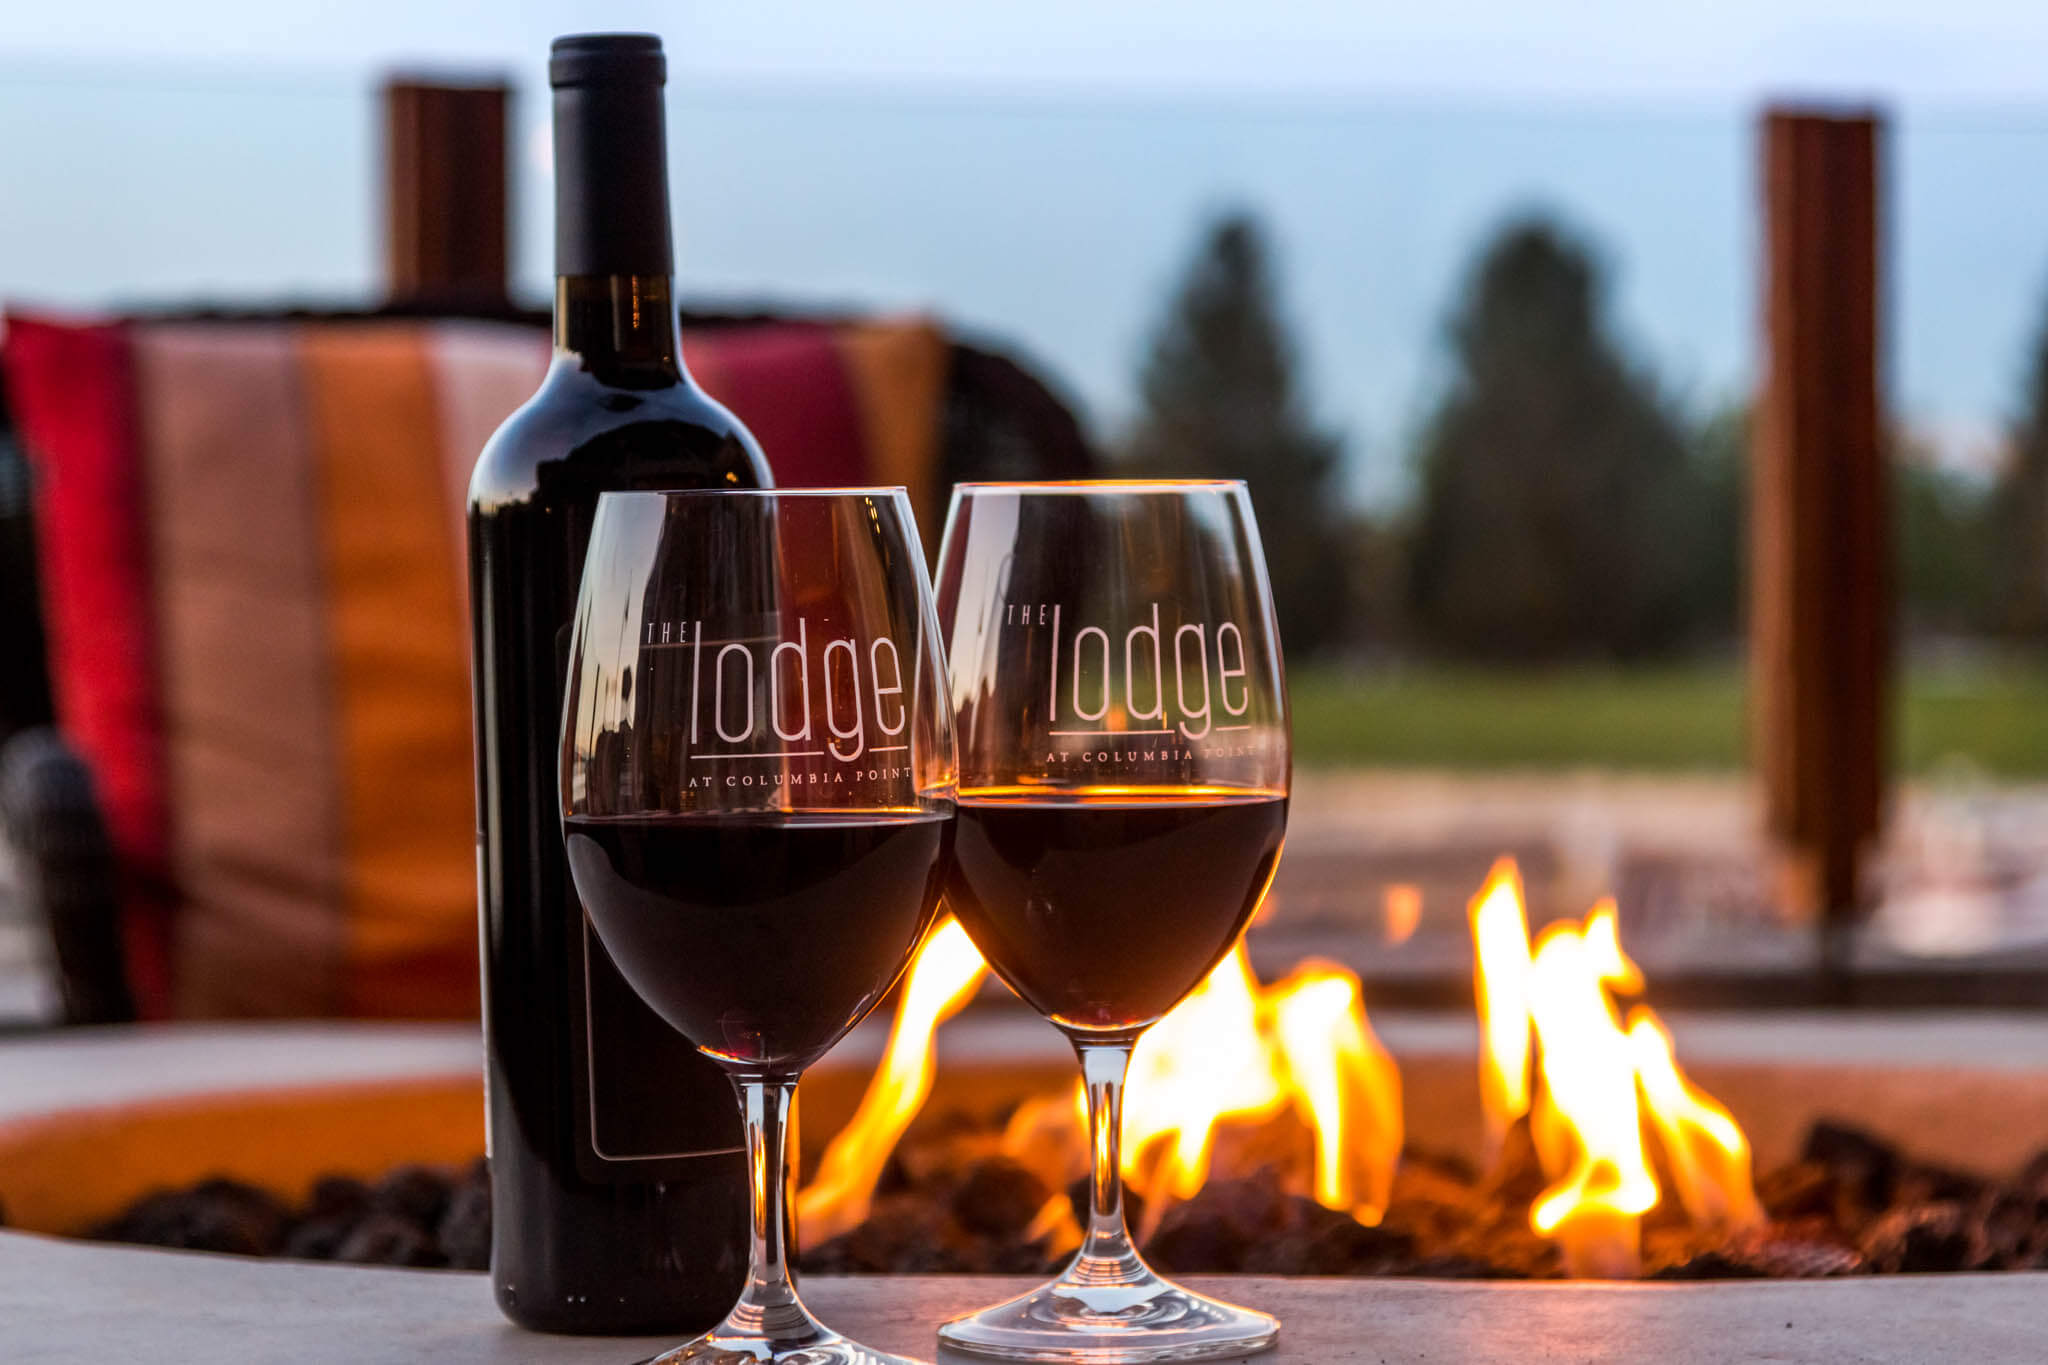 Wine by the fire-pit at the Lodge